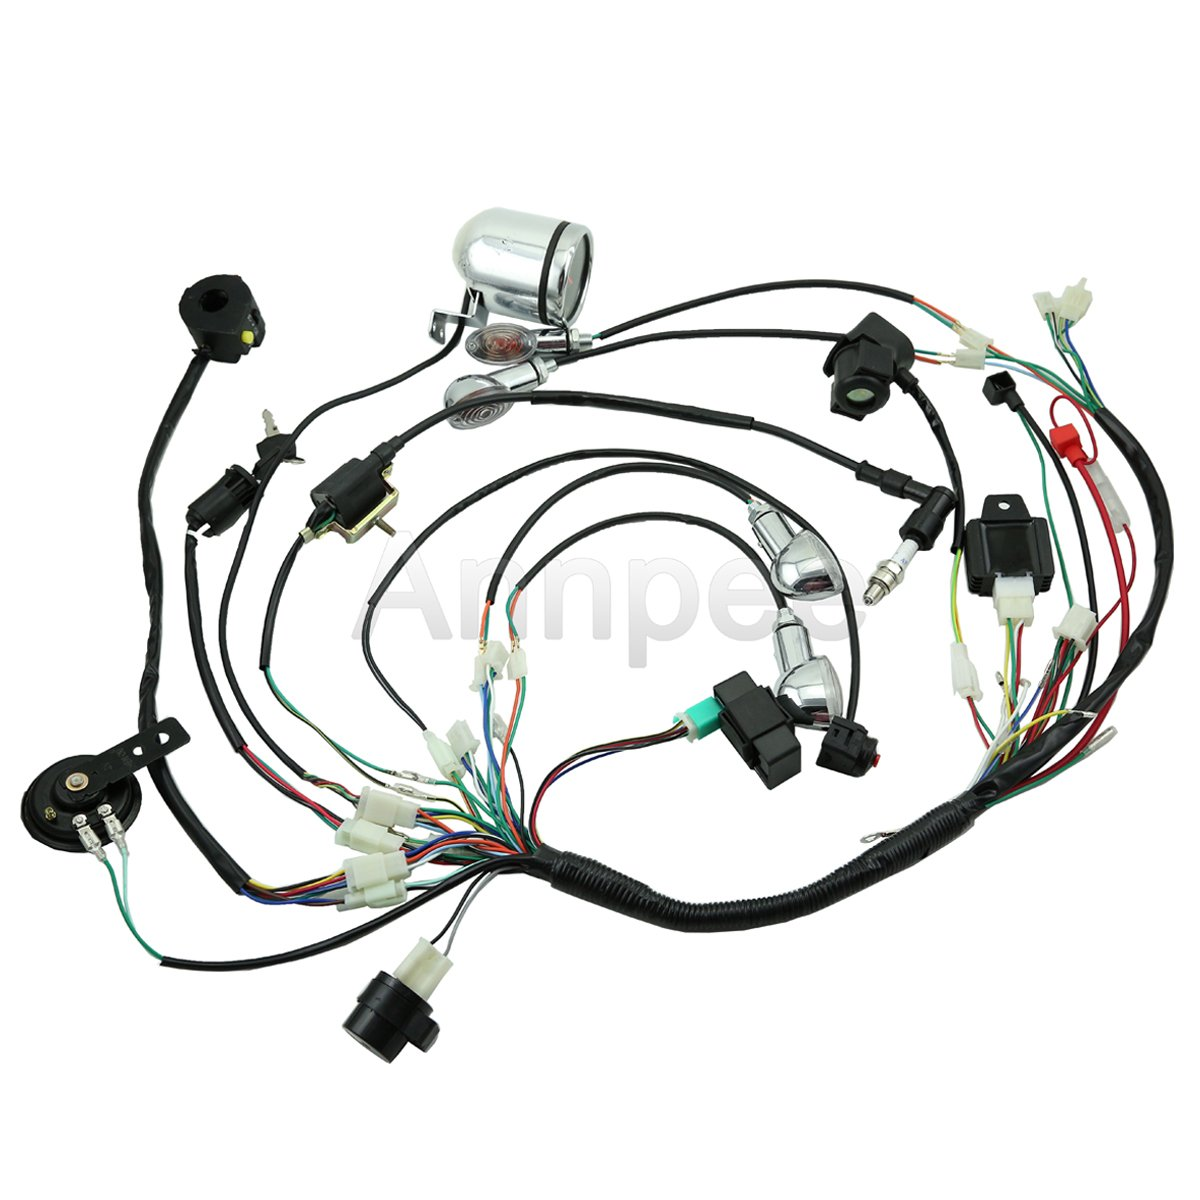 amazon annpee full electric start engine wiring harness loom 2009 Lifan 150Cc amazon annpee full electric start engine wiring harness loom 110cc 125cc quad bike atv buggy automotive